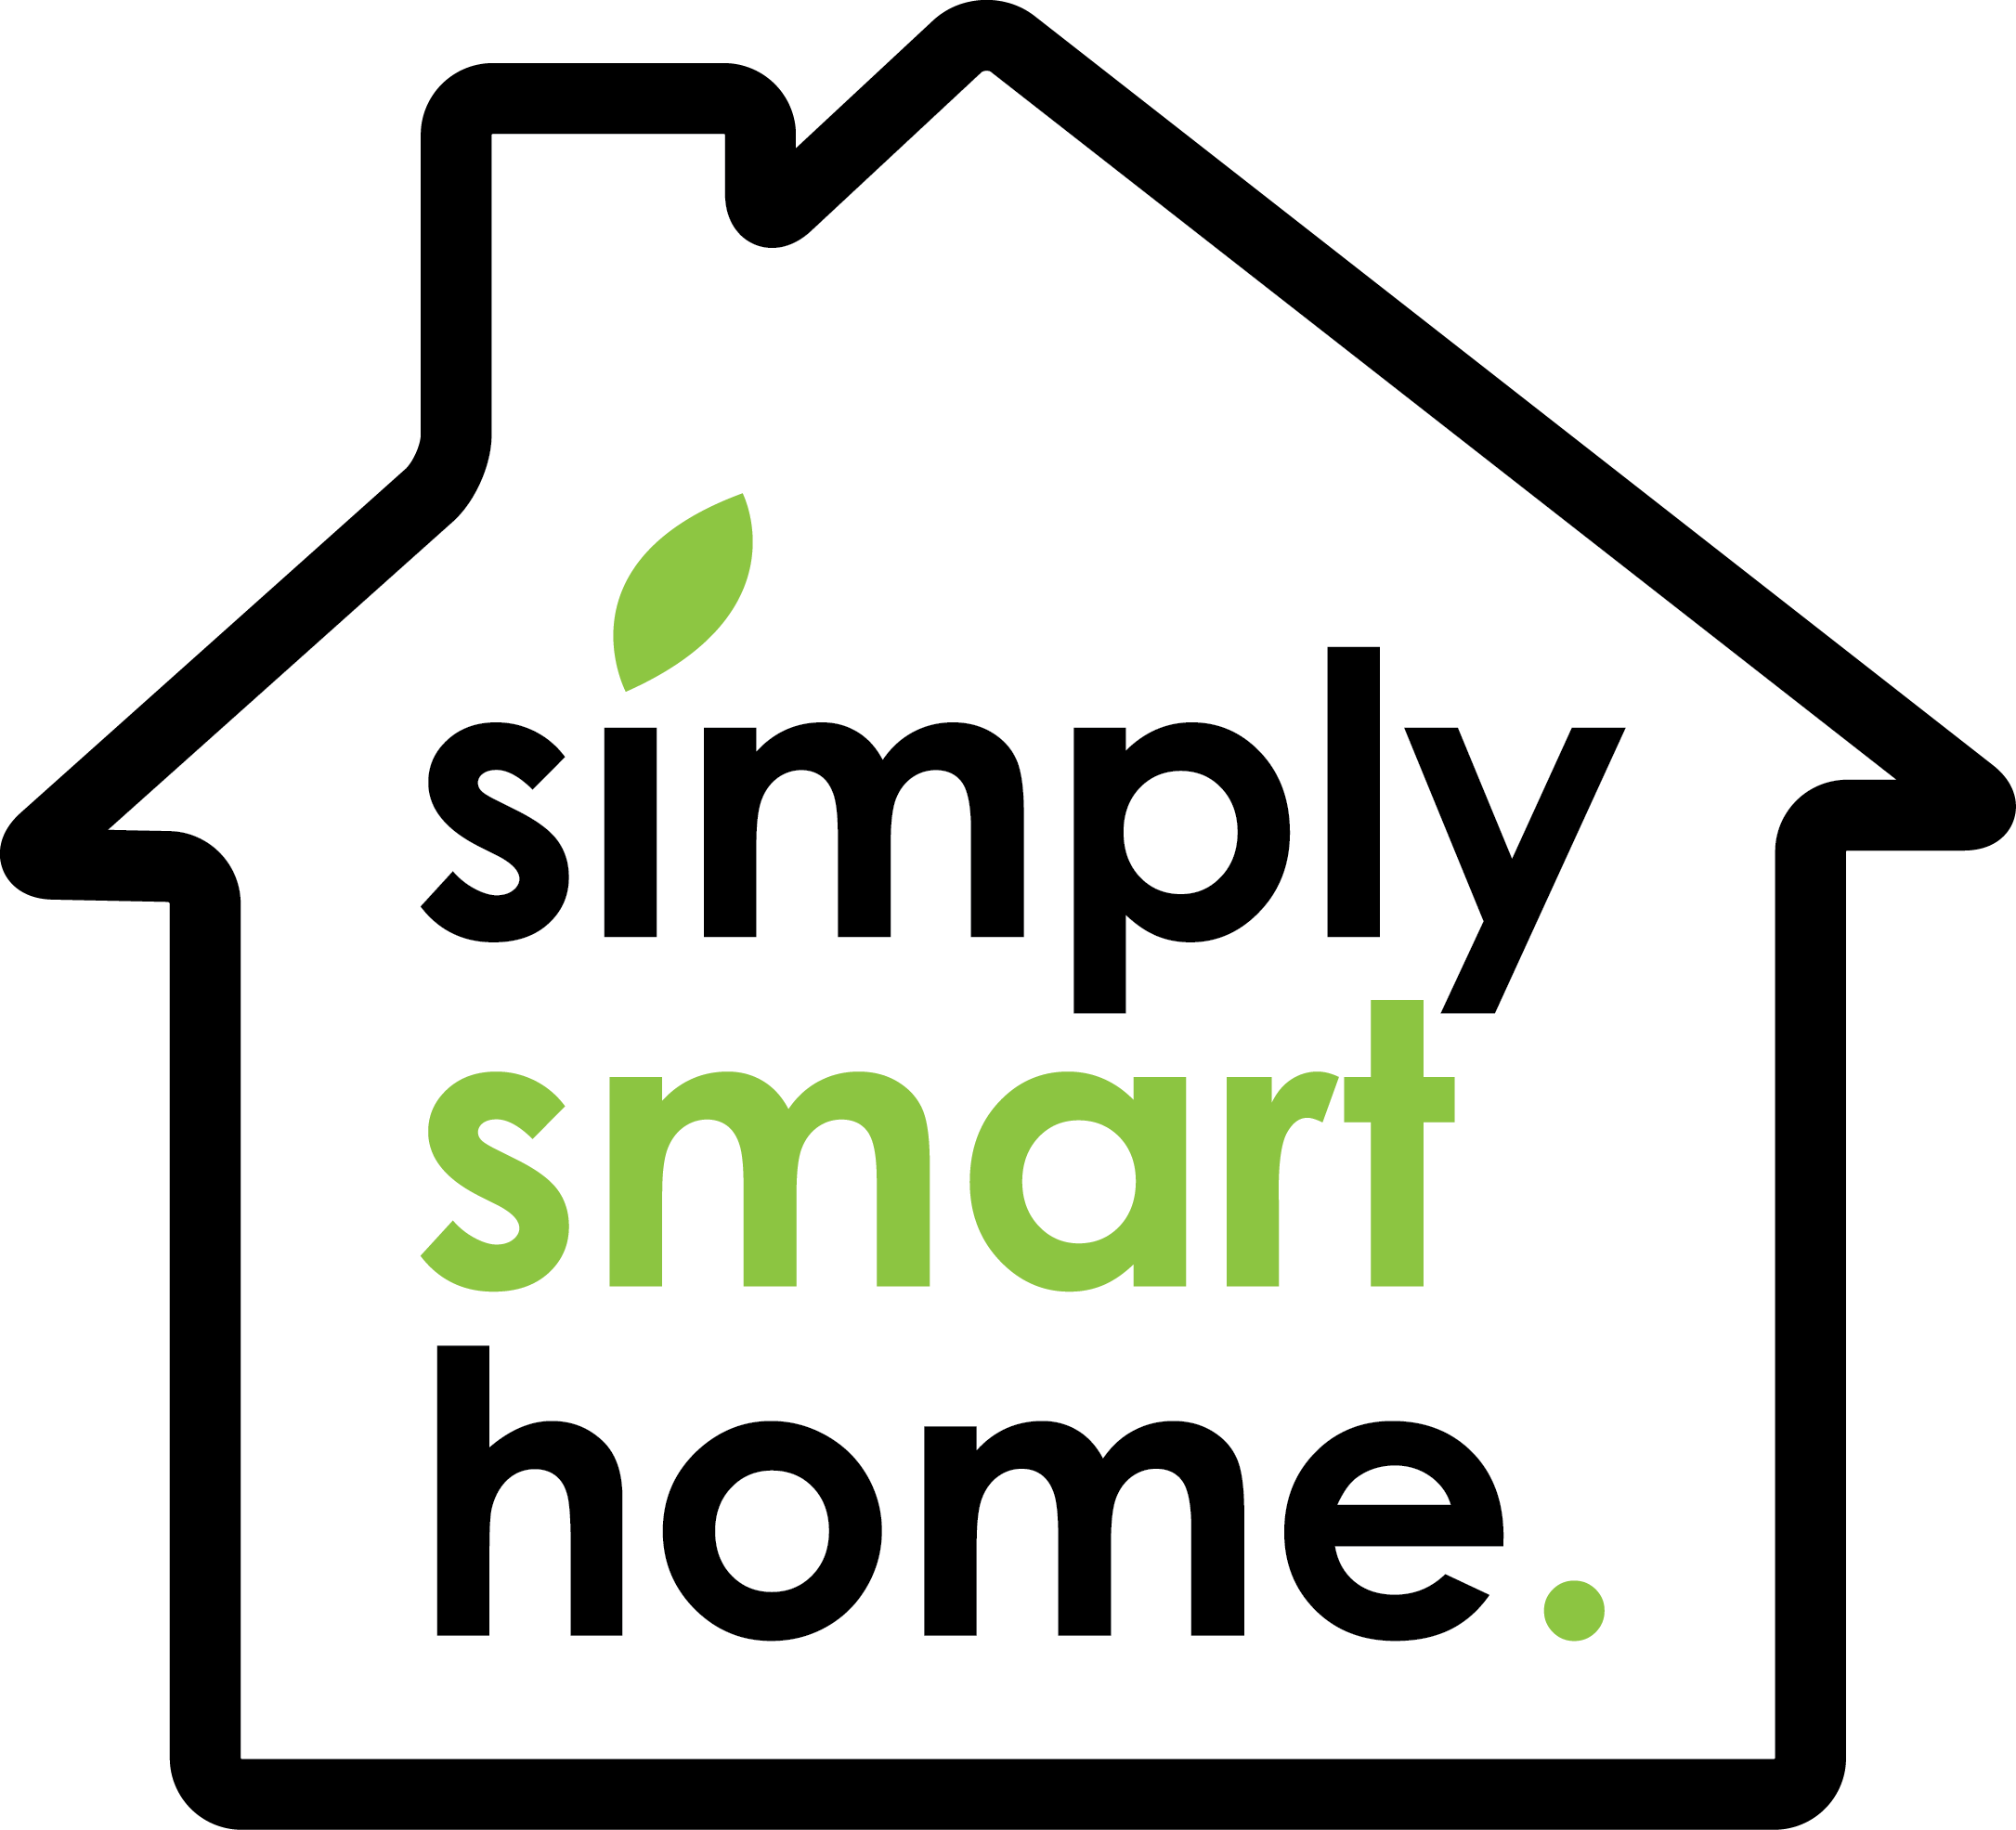 clip transparent download About us affordable home. 100 clipart 100 days smart